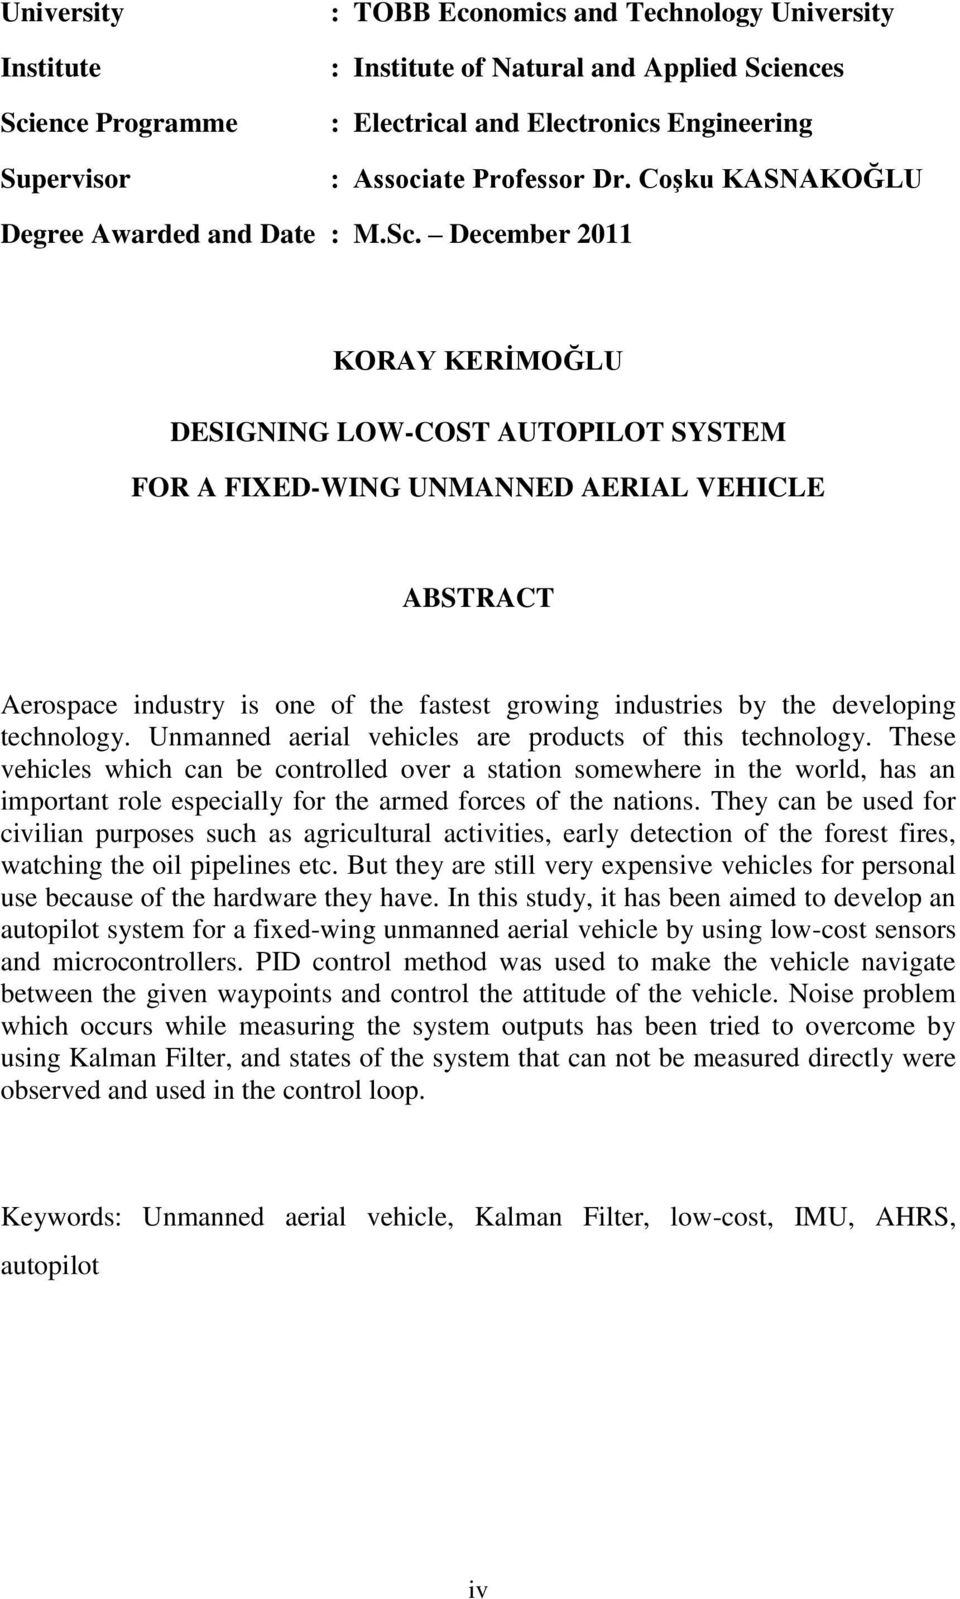 December 2011 KORAY KERĠMOĞLU DESIGNING LOW-COST AUTOPILOT SYSTEM FOR A FIXED-WING UNMANNED AERIAL VEHICLE ABSTRACT Aerospace industry is one of the fastest growing industries by the developing